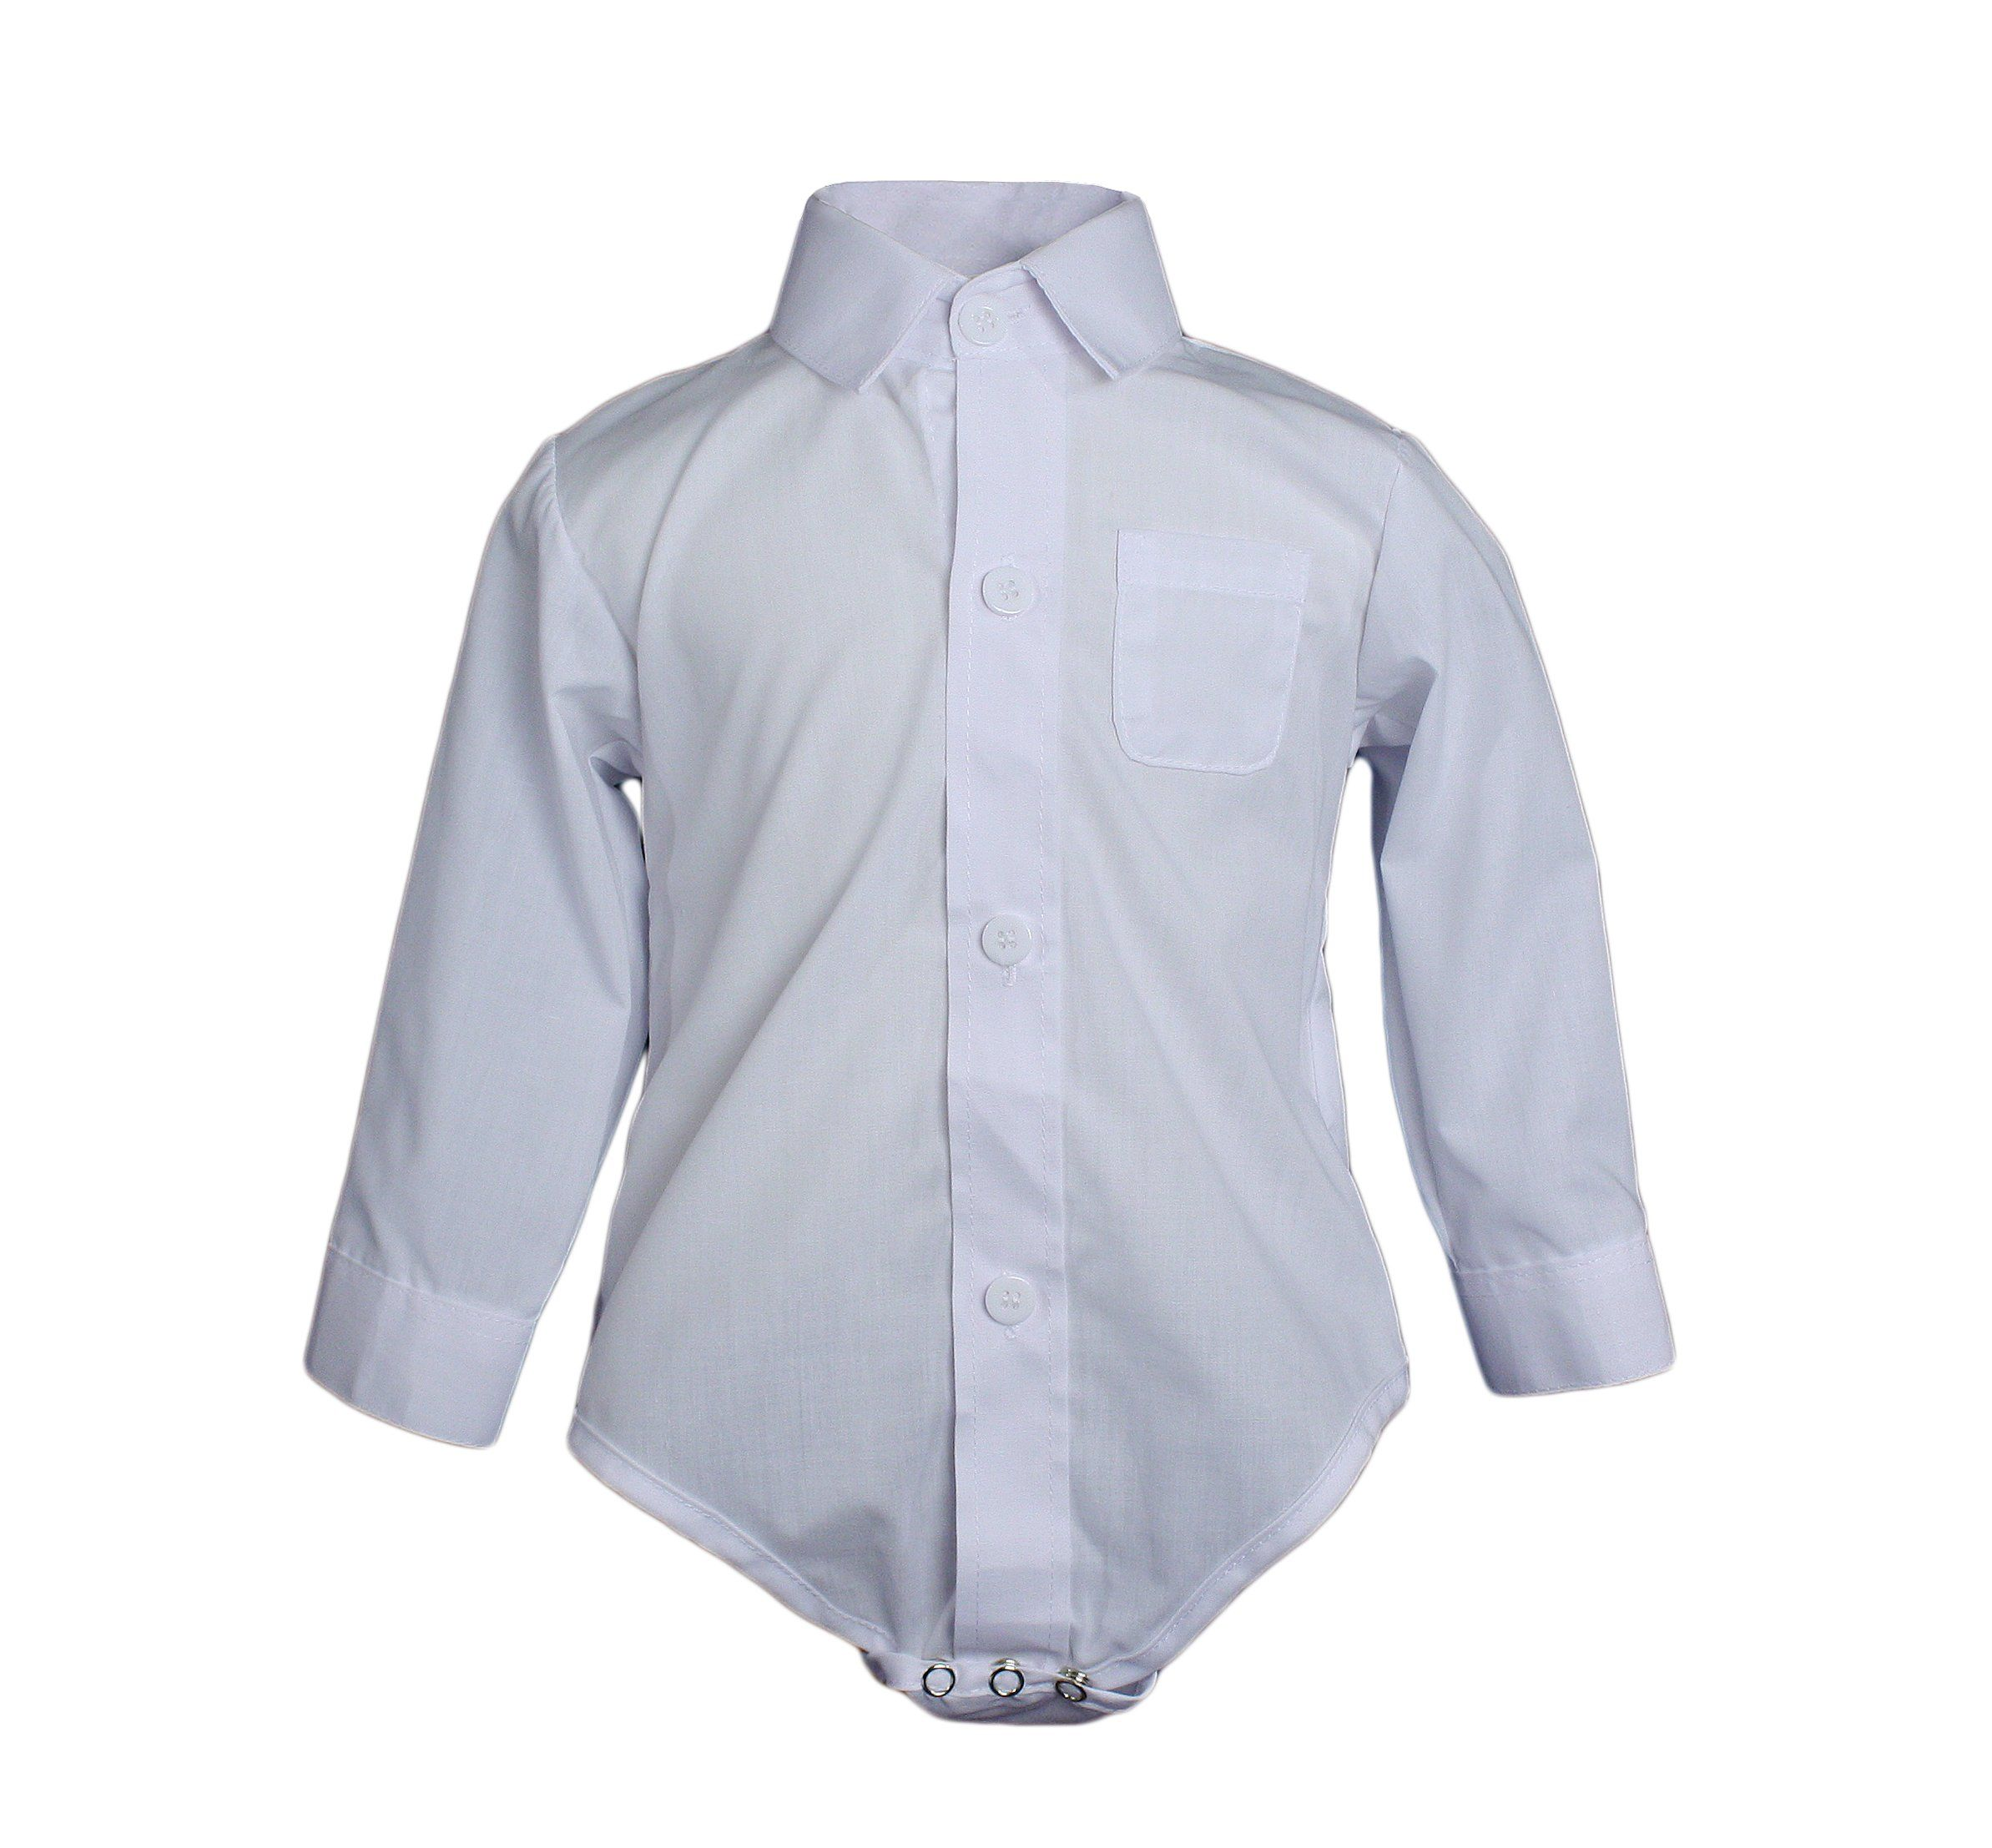 Baby Boys Poly Cotton Button Up White Dress Shirt Bodysuit Romper W Collar12m You Can Get Additional Det White Shirt Dress Shirt Dress Stylish Baby Clothes [ 2215 x 2387 Pixel ]